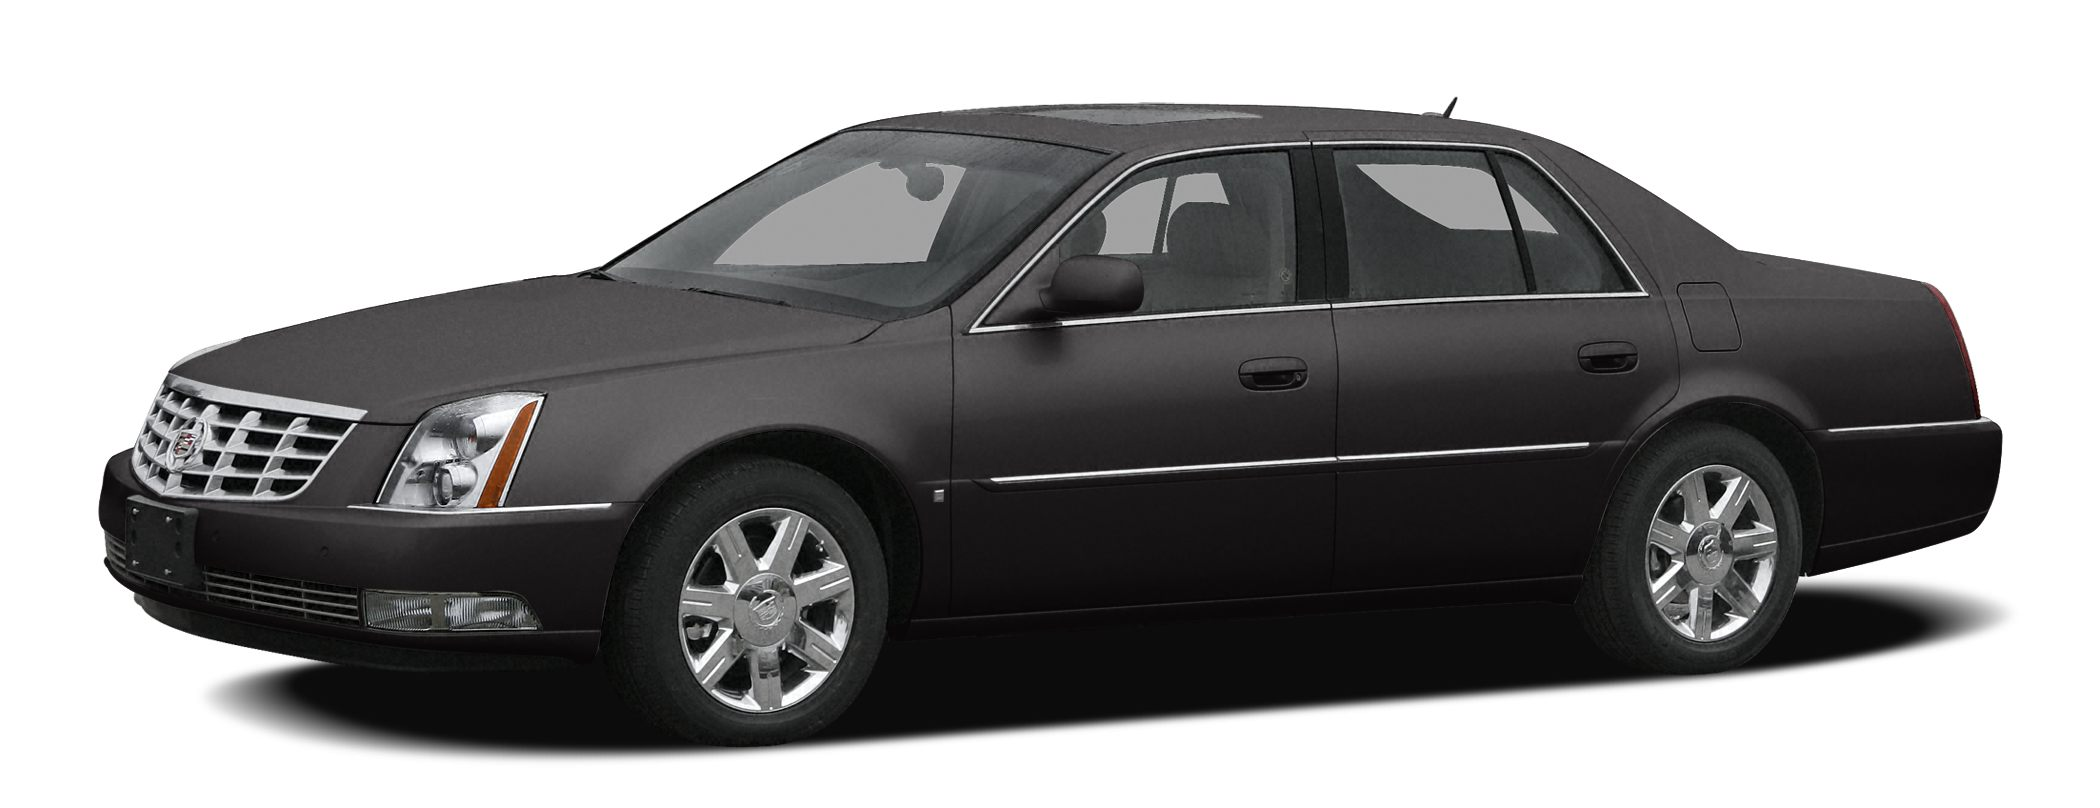 2010 Cadillac DTS Luxury Certified Carfax and Very low miles Luxury Collection Package 1SC Body